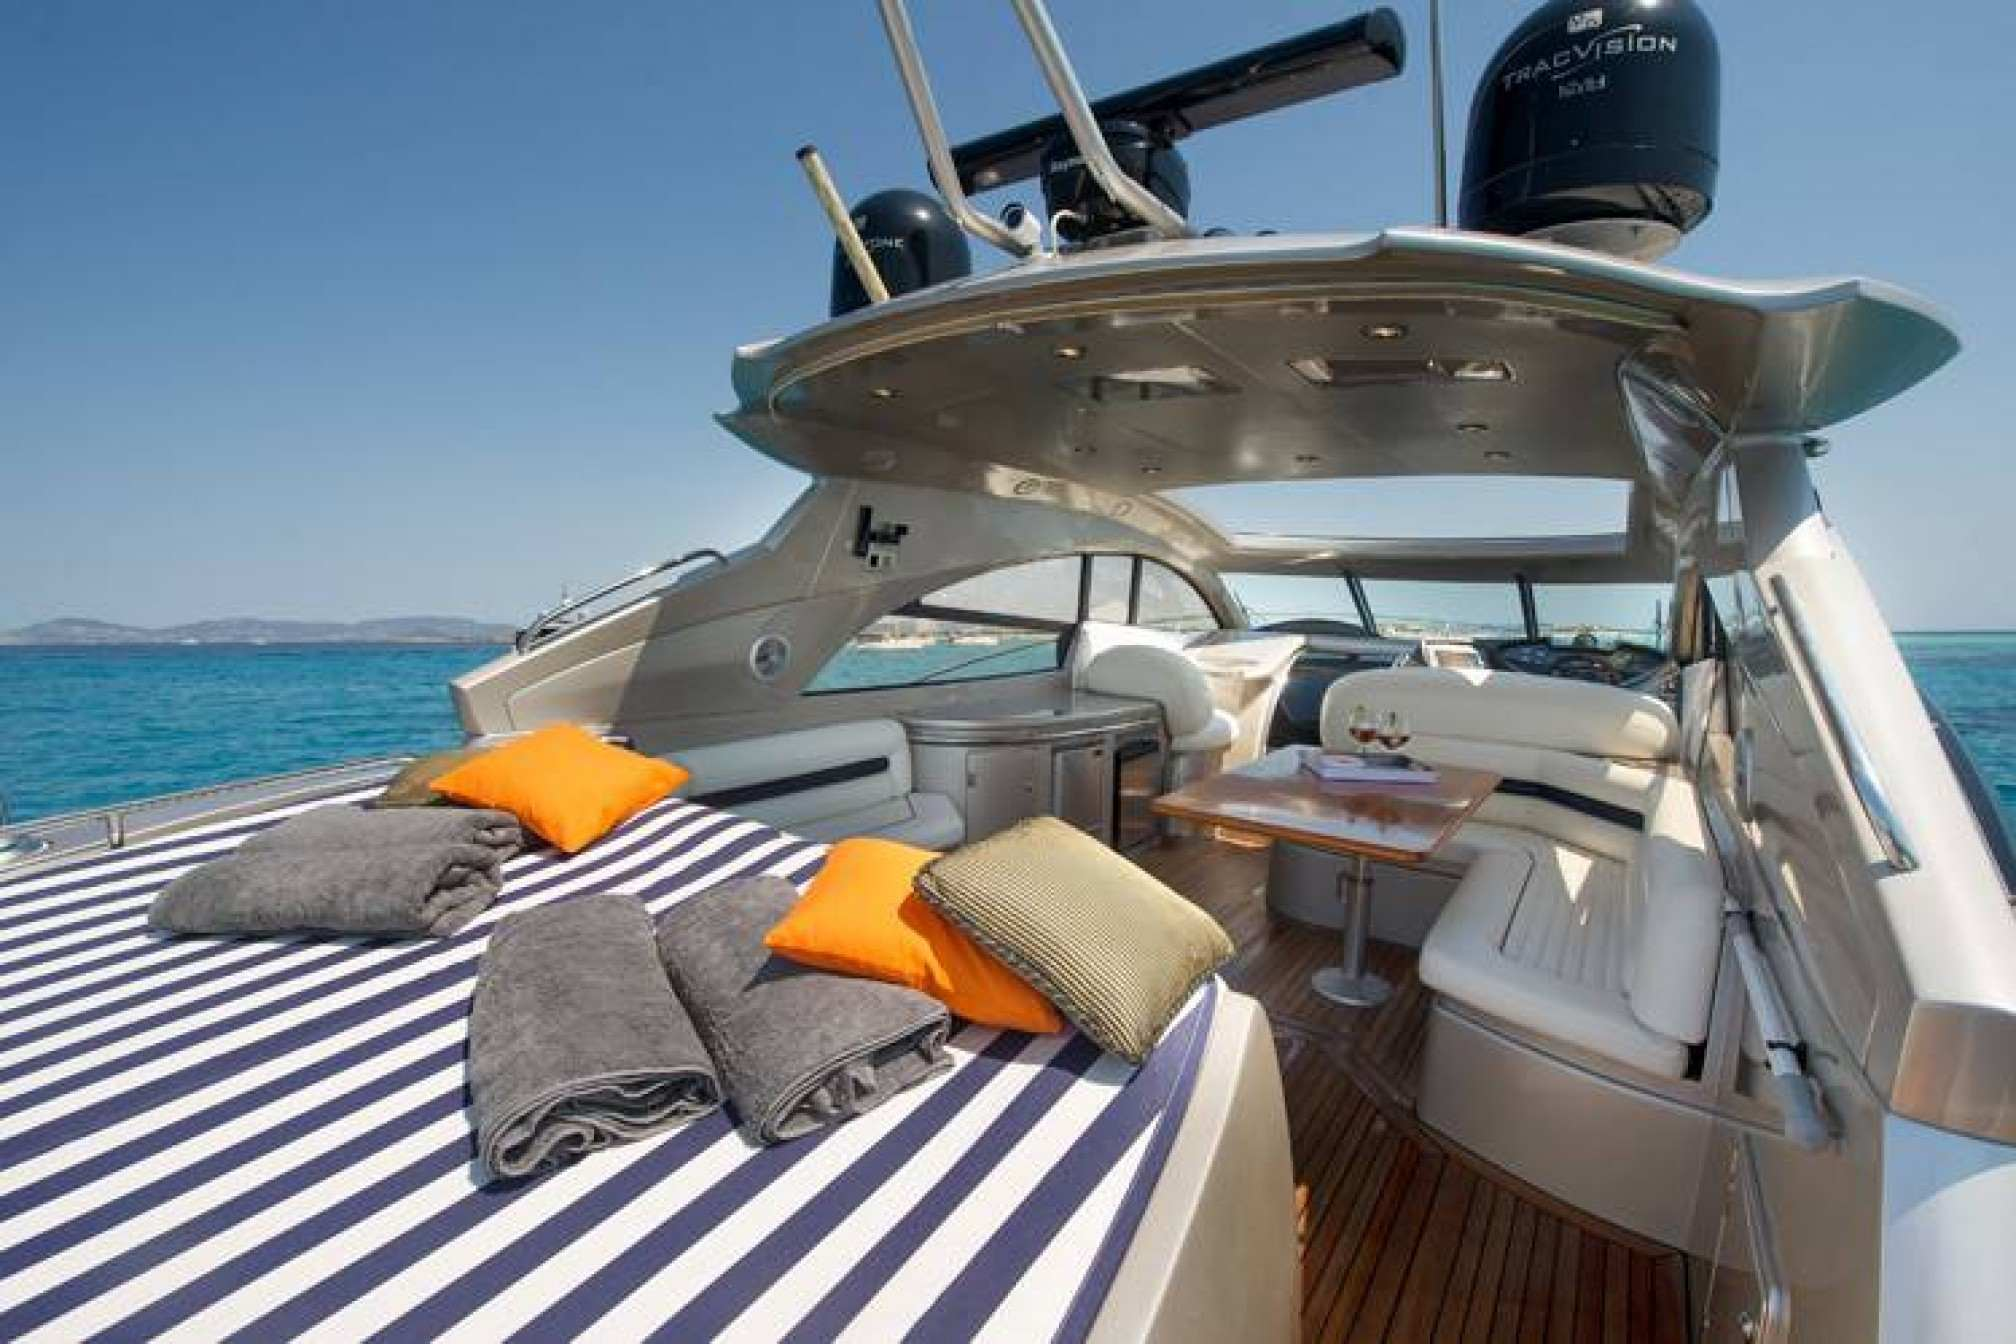 Sunseeker Predator 61 charter yacht outdoors